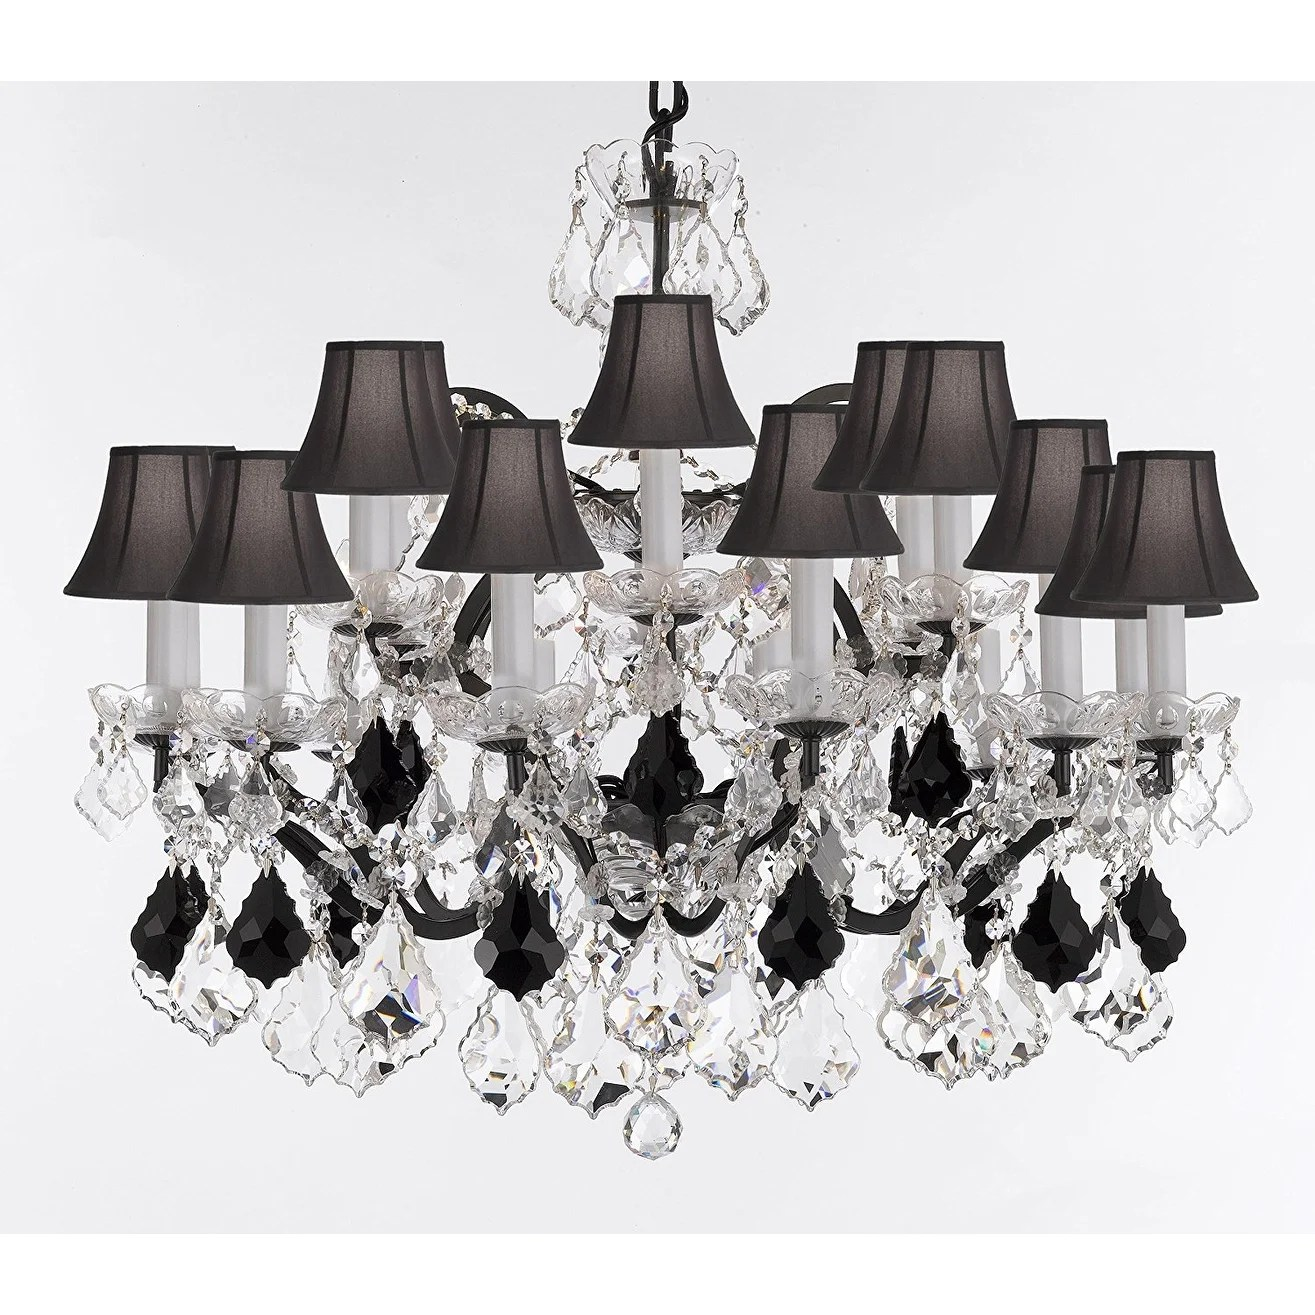 Black Wrought Iron Kitchen Light Fixtures Baroque Wrought Iron Crystal Chandelier